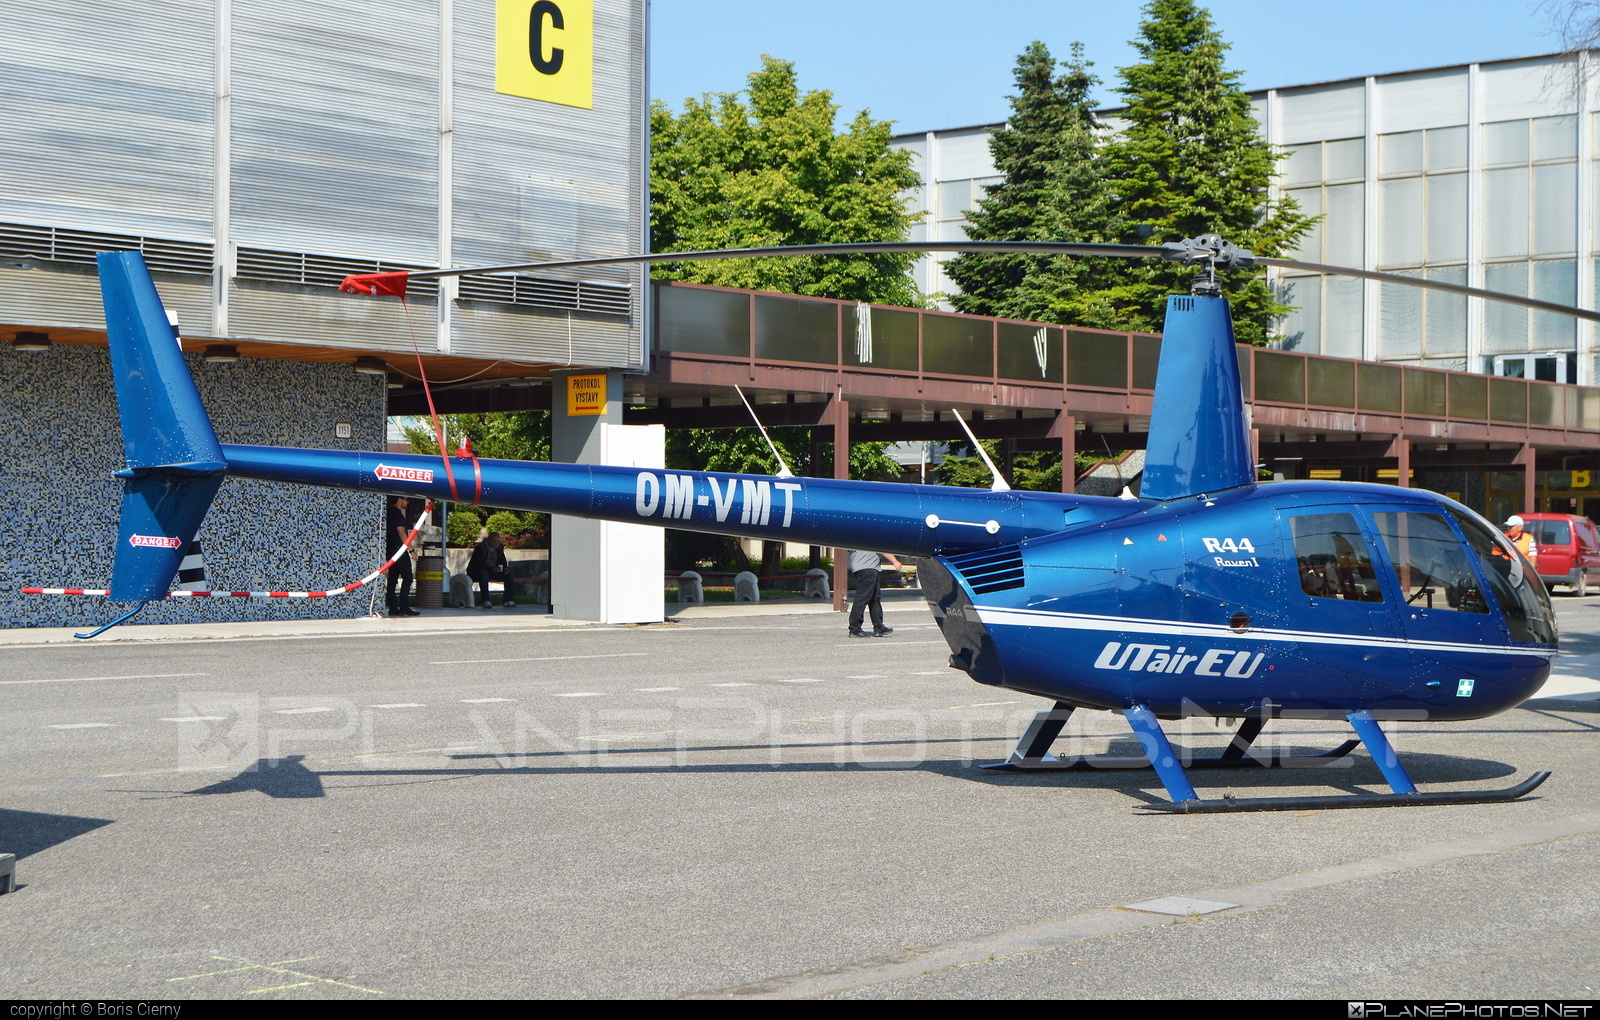 Robinson R44 Raven - OM-VMT operated by UTair Europe #r44 #r44raven #robinson #robinson44 #robinson44raven #robinsonr44 #robinsonr44raven #utair #utaireurope